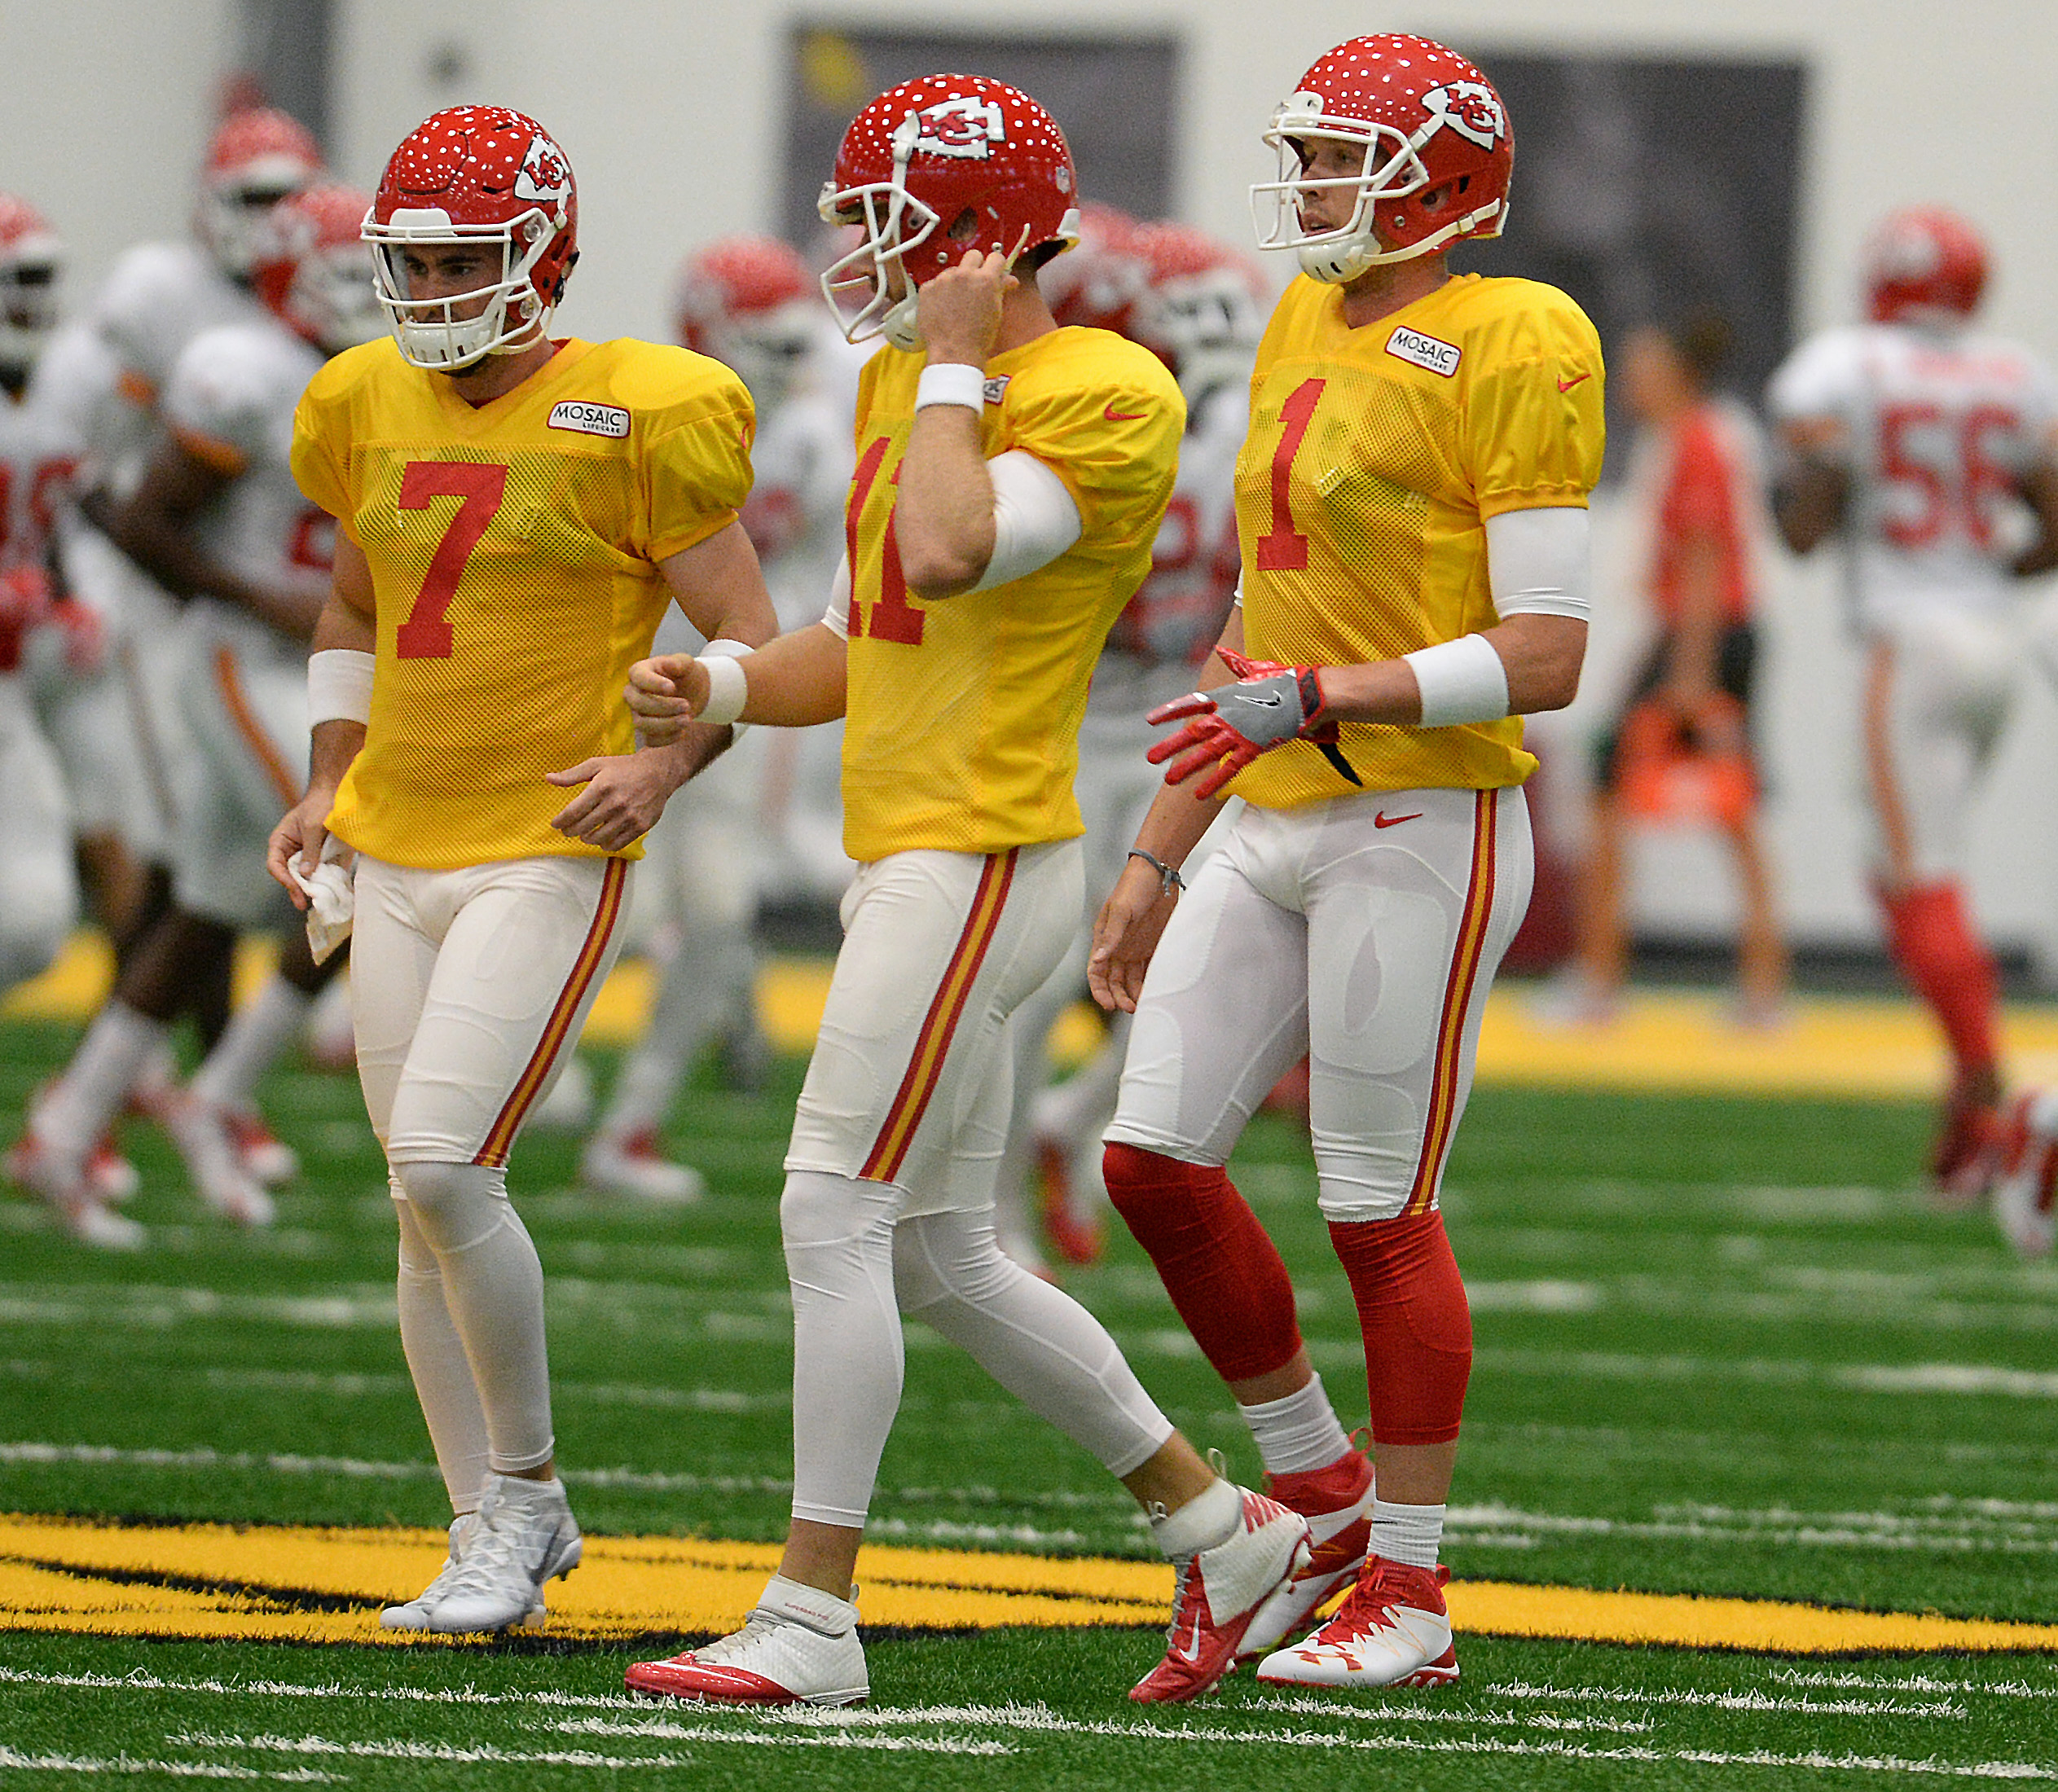 From left, Kansas City Chiefs quarterbacks Aaron Murray, Alex Smith and newly acquired Nick Foles practice at training Camp at the Griffon Indoor Sports Complex at Missouri Western State University Friday, Aug. 5, 2016 in St. Joseph, Mo. (Dougal Brownlie/